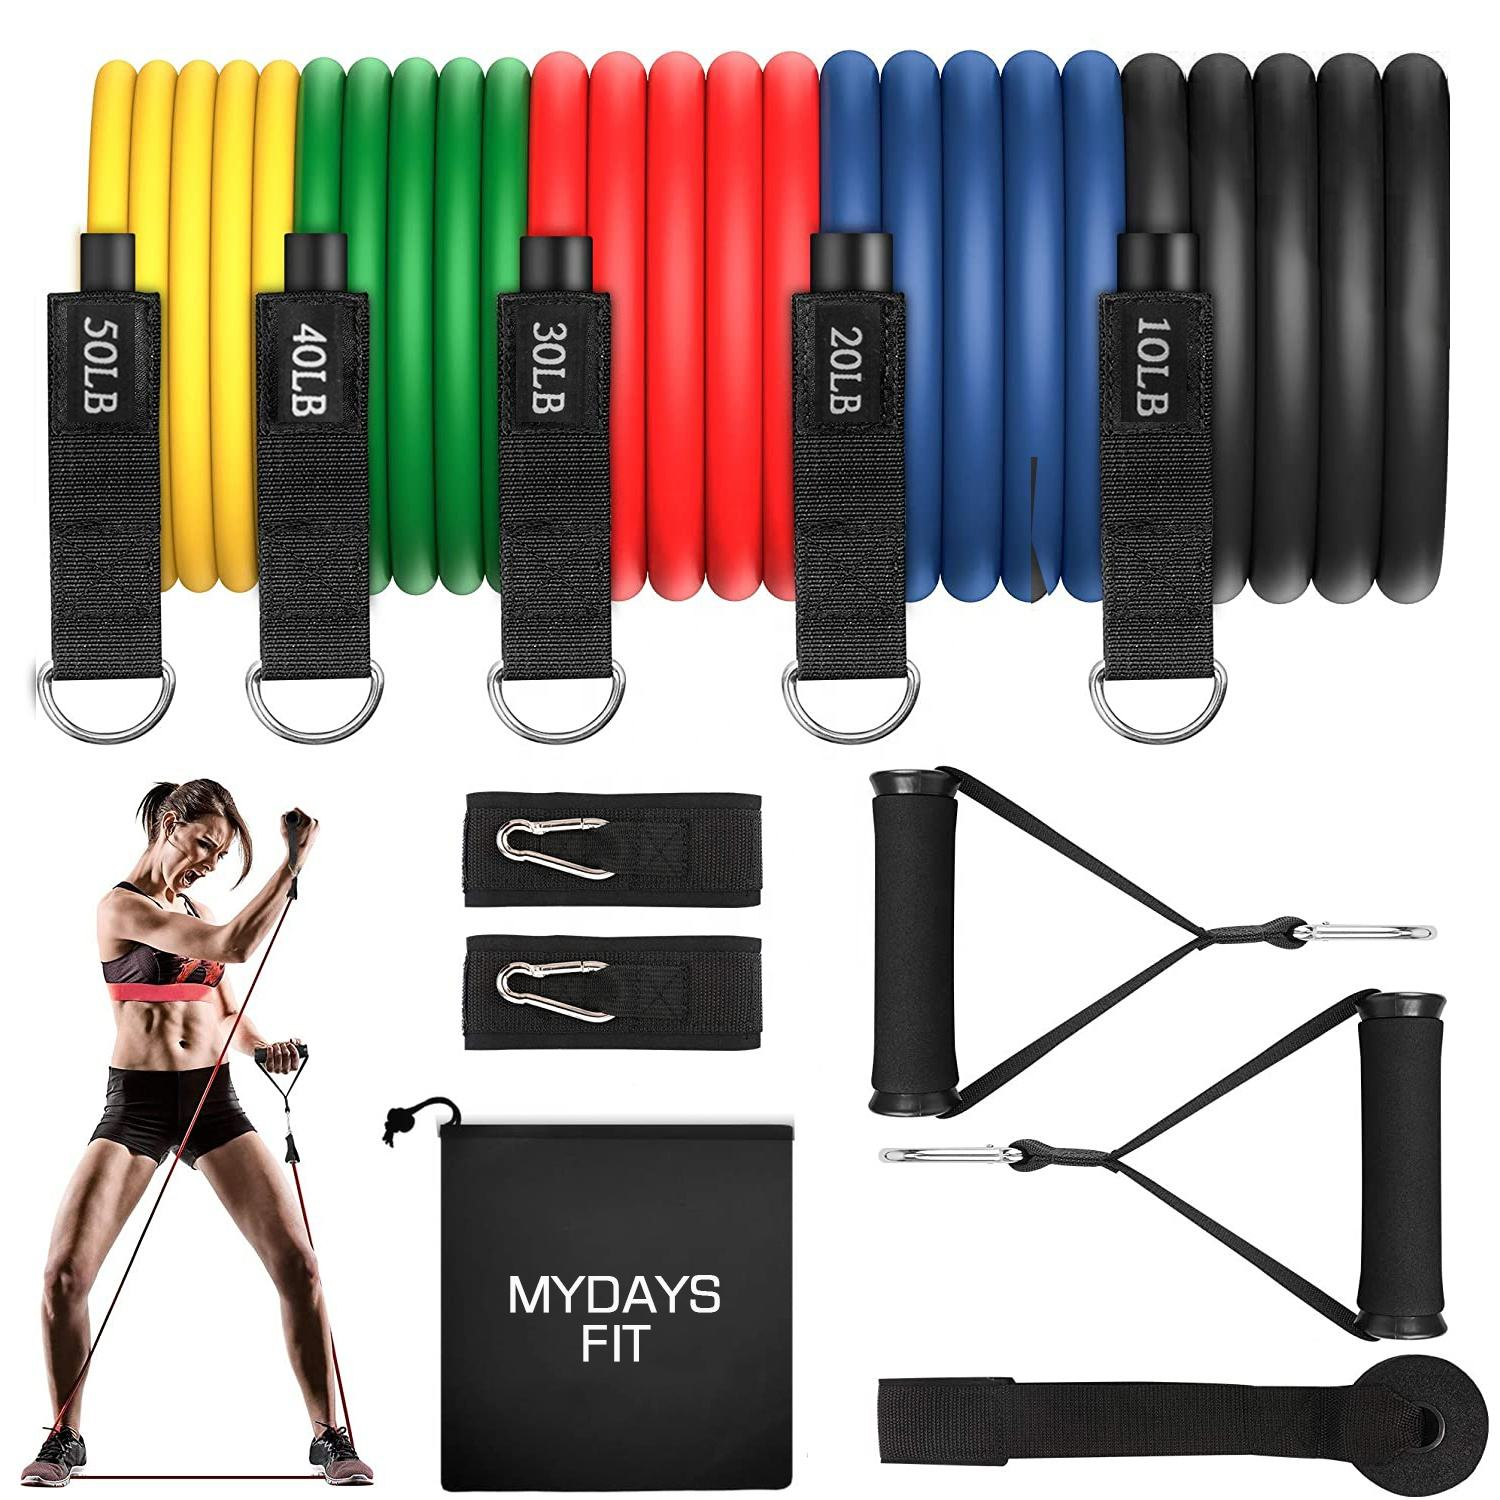 Fitness Yoga Home Gym Equipment Workout Stackable Upに150lb 11個Exercise Resistance Tubes Bands SetとDoor Anchor Handles